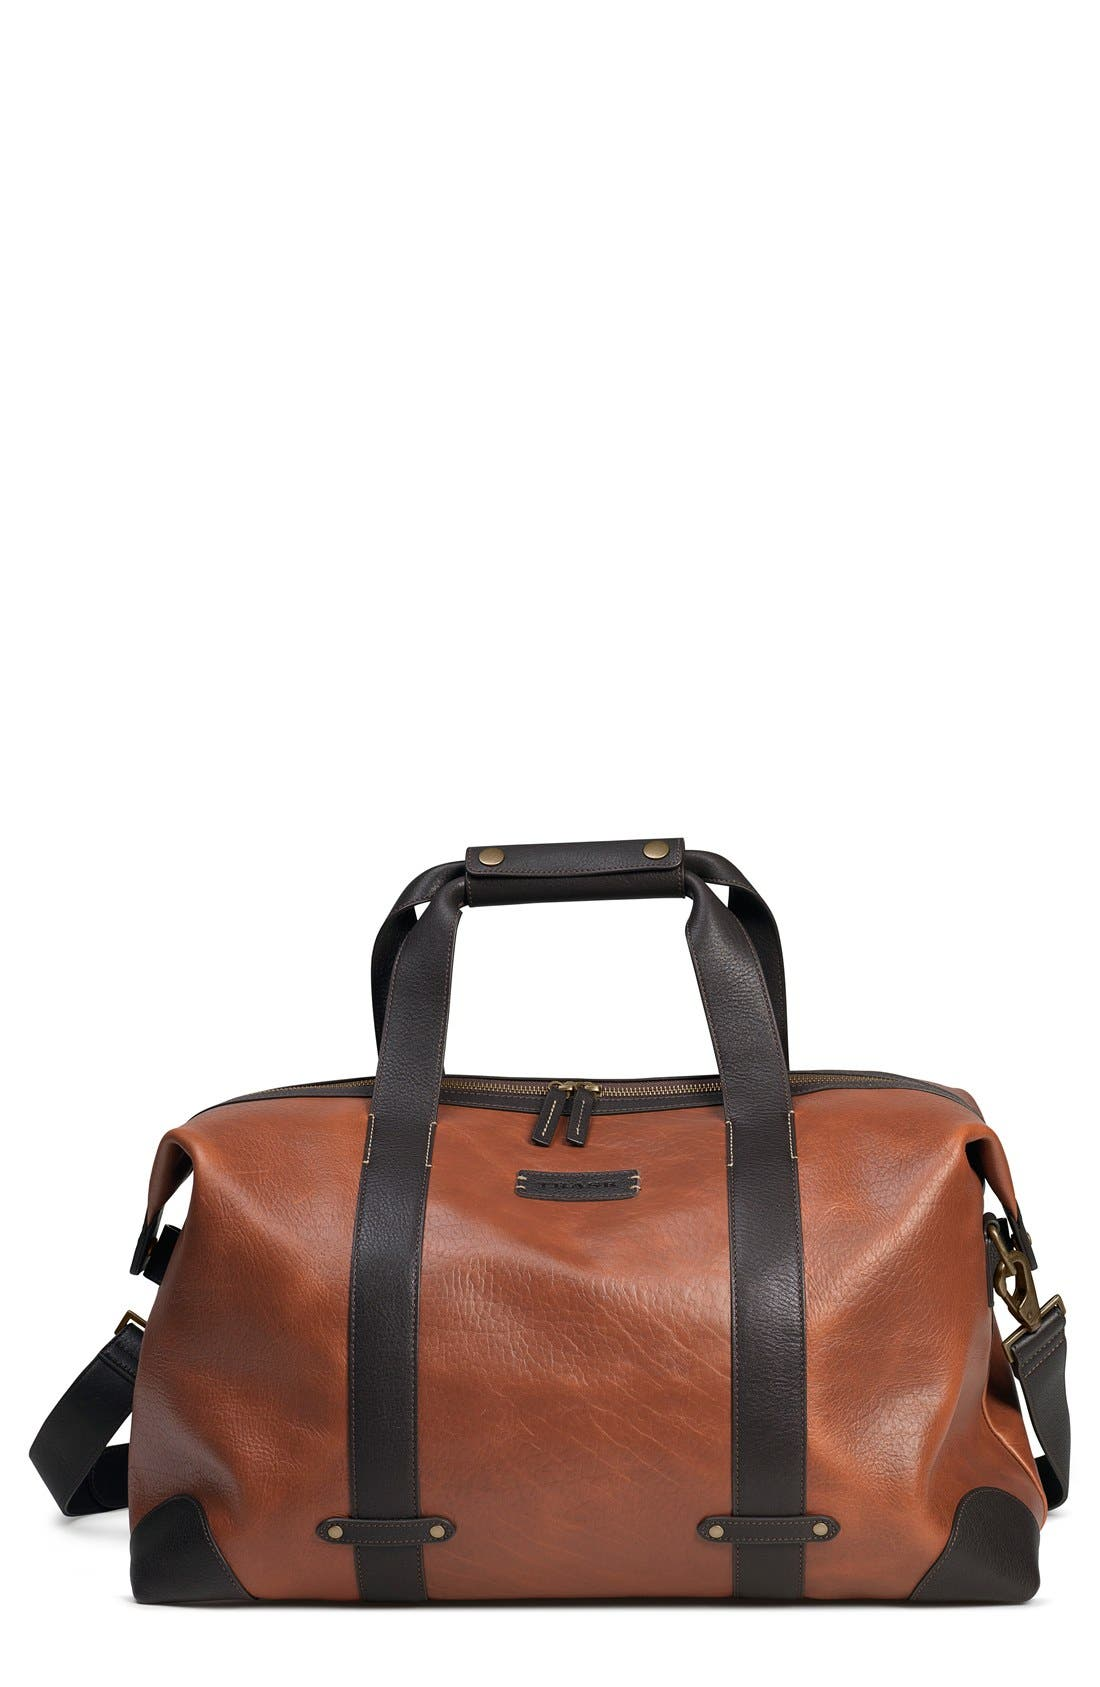 TRASK 'Jackson' Leather Duffel Bag